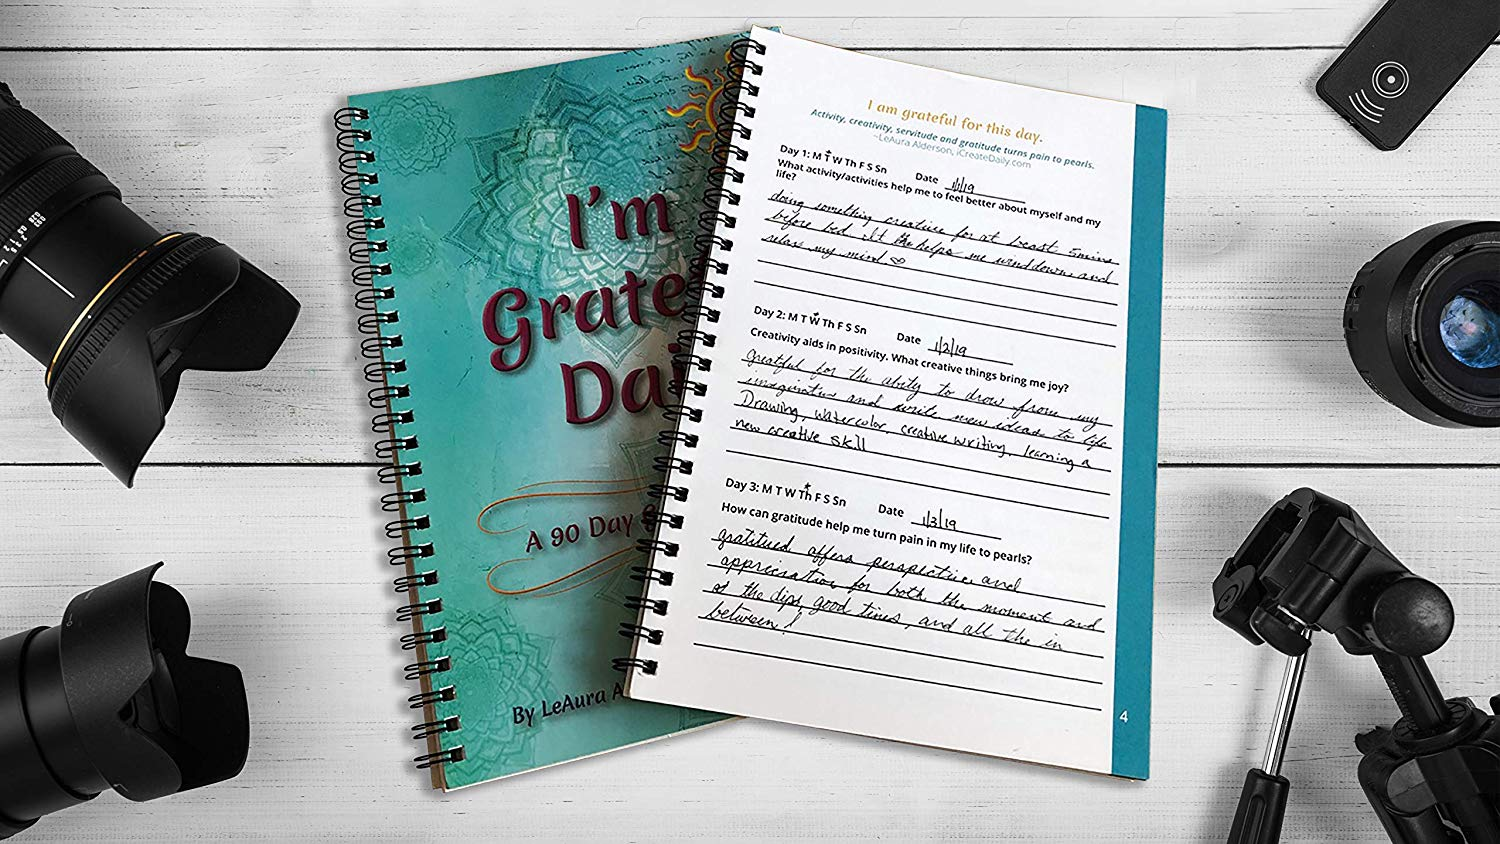 I'm Grateful Daily 90 Day Gratitude Journal